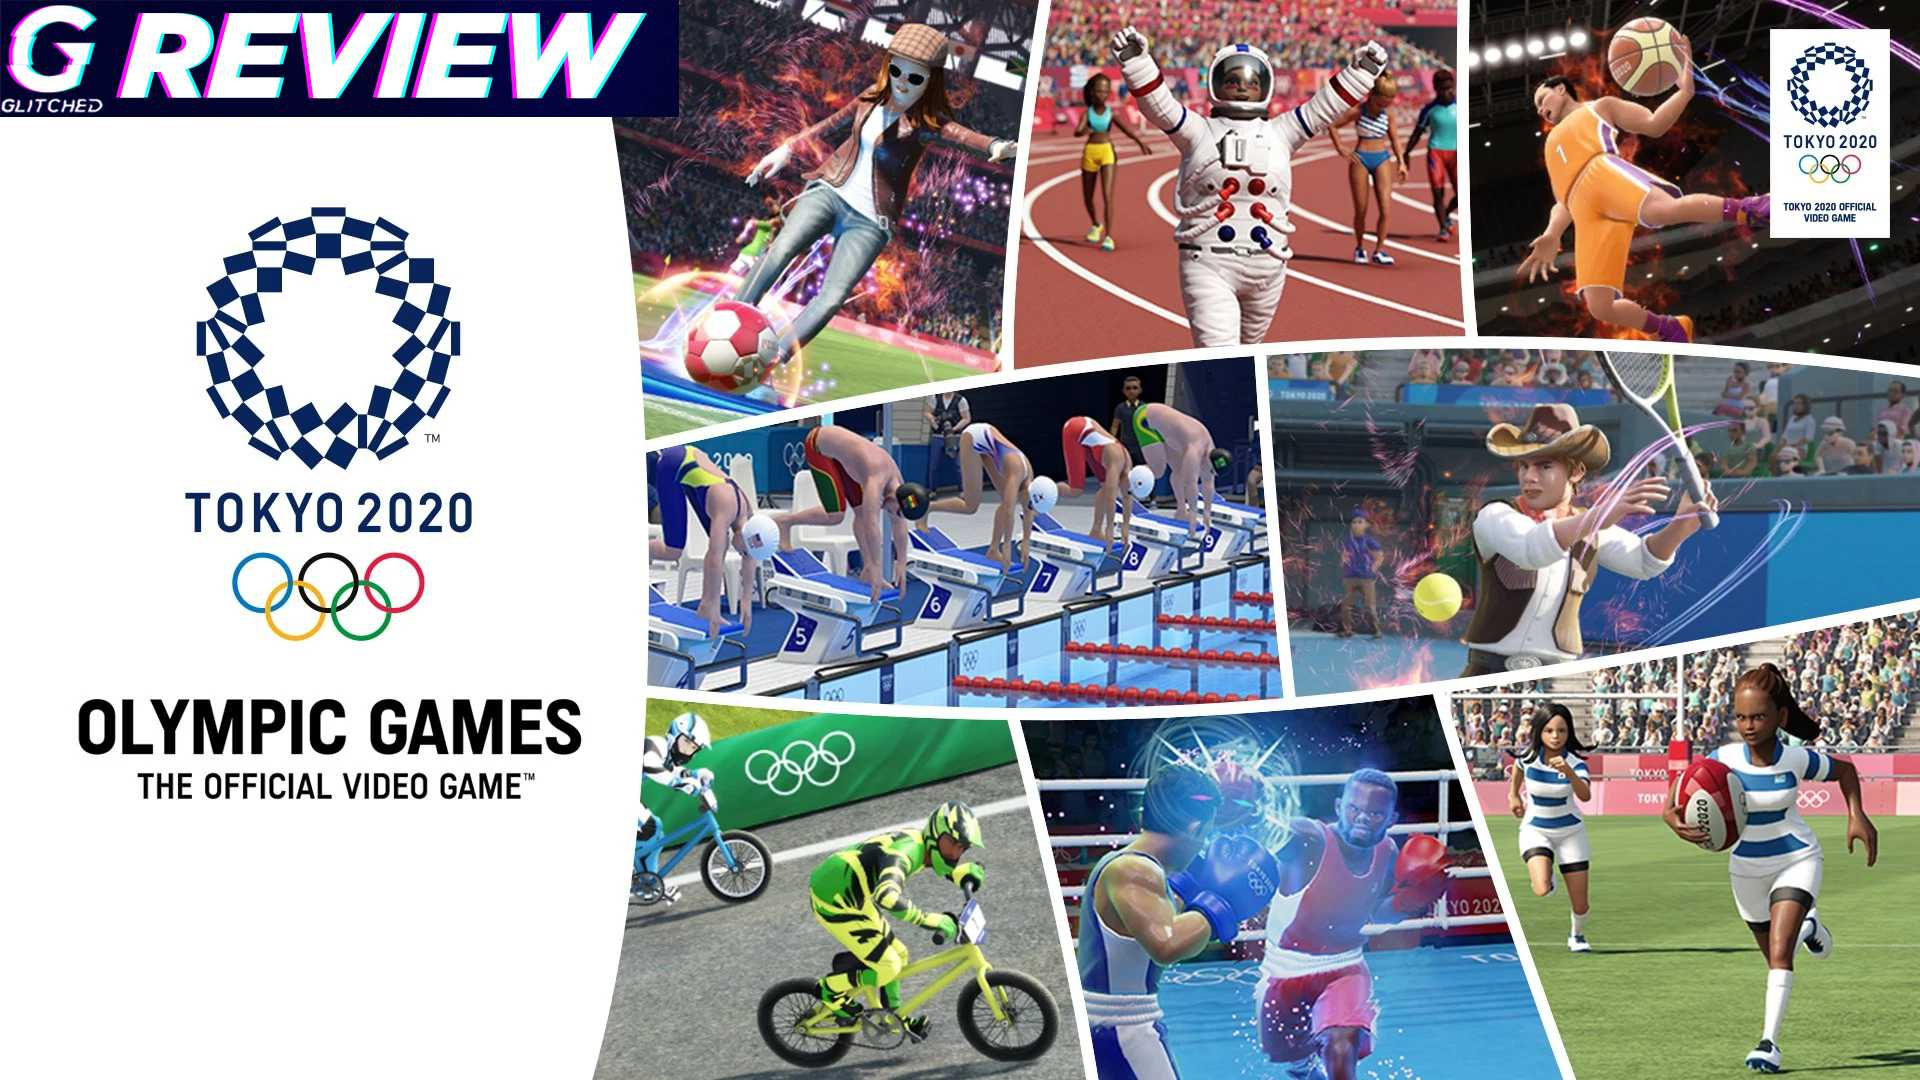 Olympic Games Tokyo 2020 The Official Video Game Review